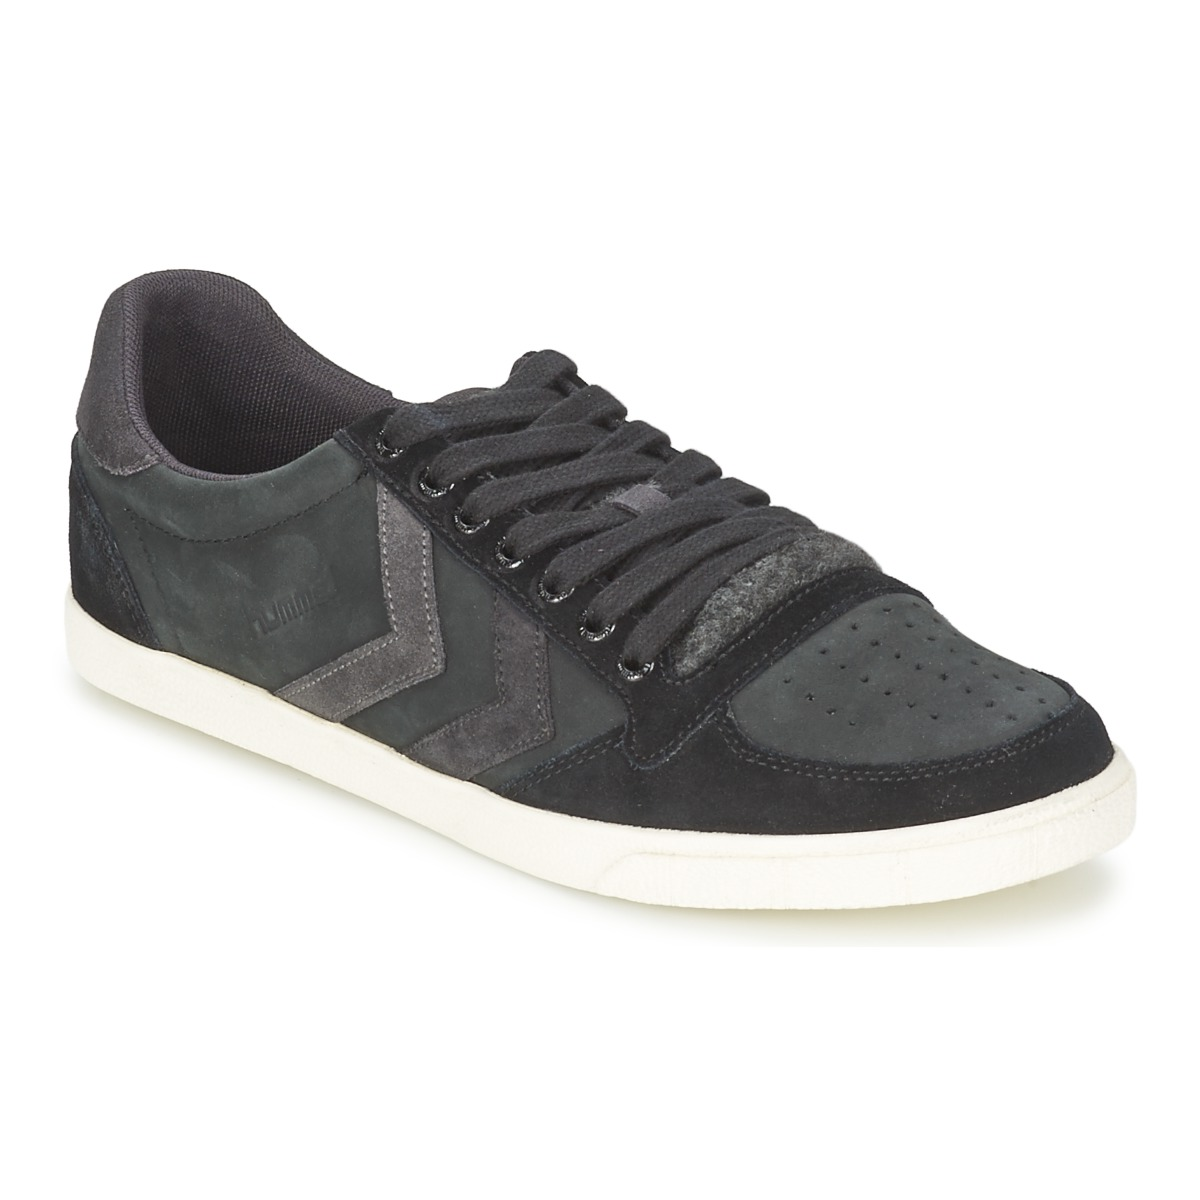 hummel slimmer stadil mix low black free delivery with spartoo uk shoes low top trainers. Black Bedroom Furniture Sets. Home Design Ideas